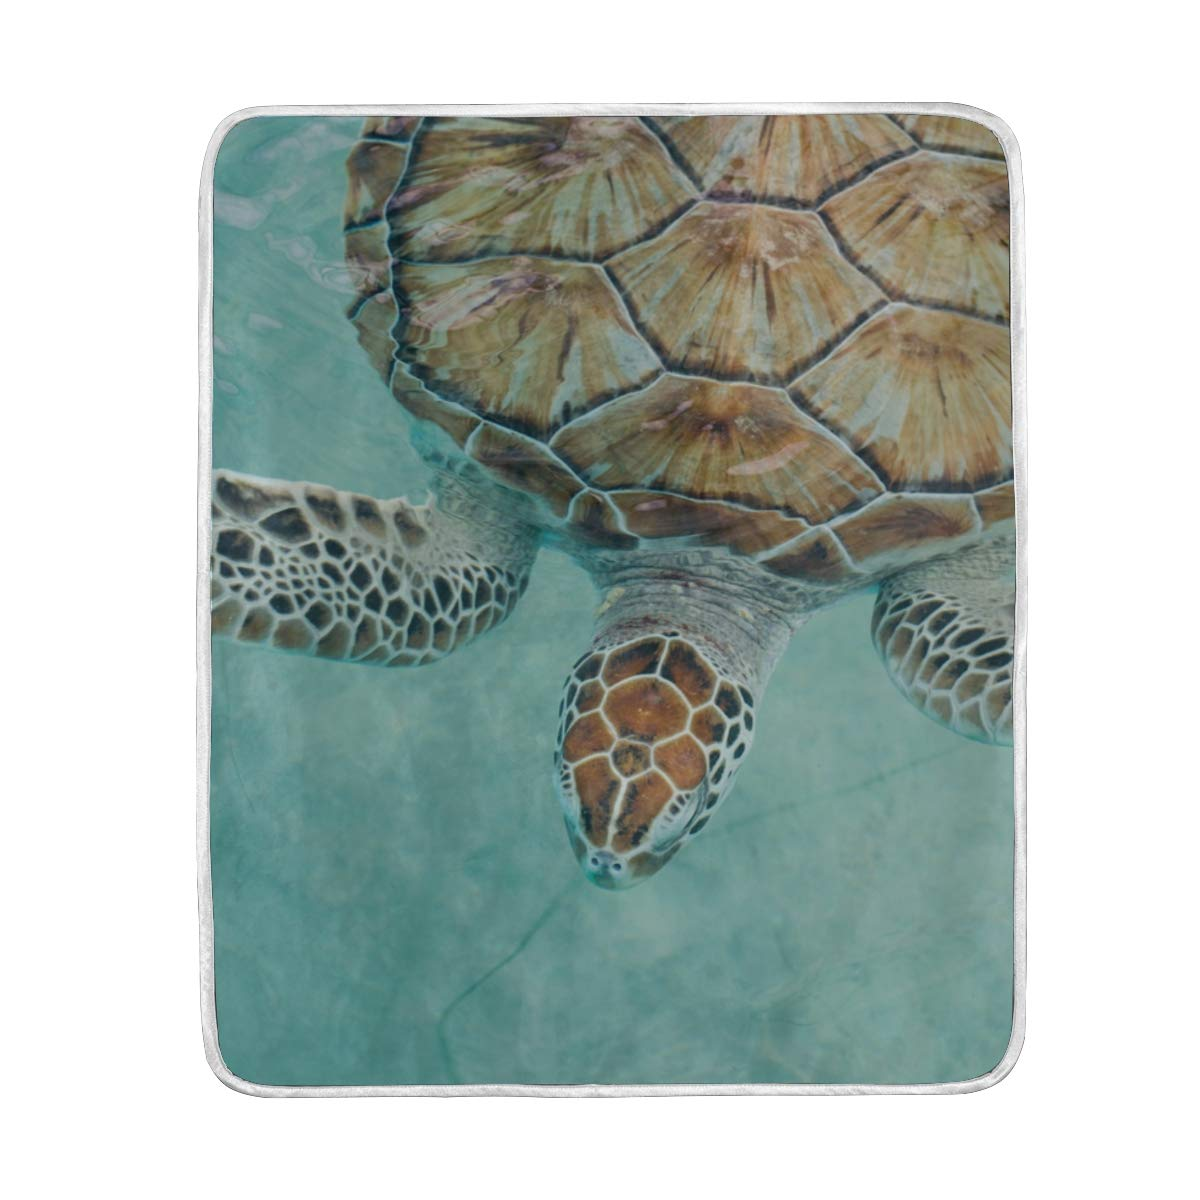 La Random Mexican Sea Turtle Throw Blankets Soft Cozy Blanket for Sofa Couch Bed Polyester Microfiber 50'x60' Air Conditioner Blanket